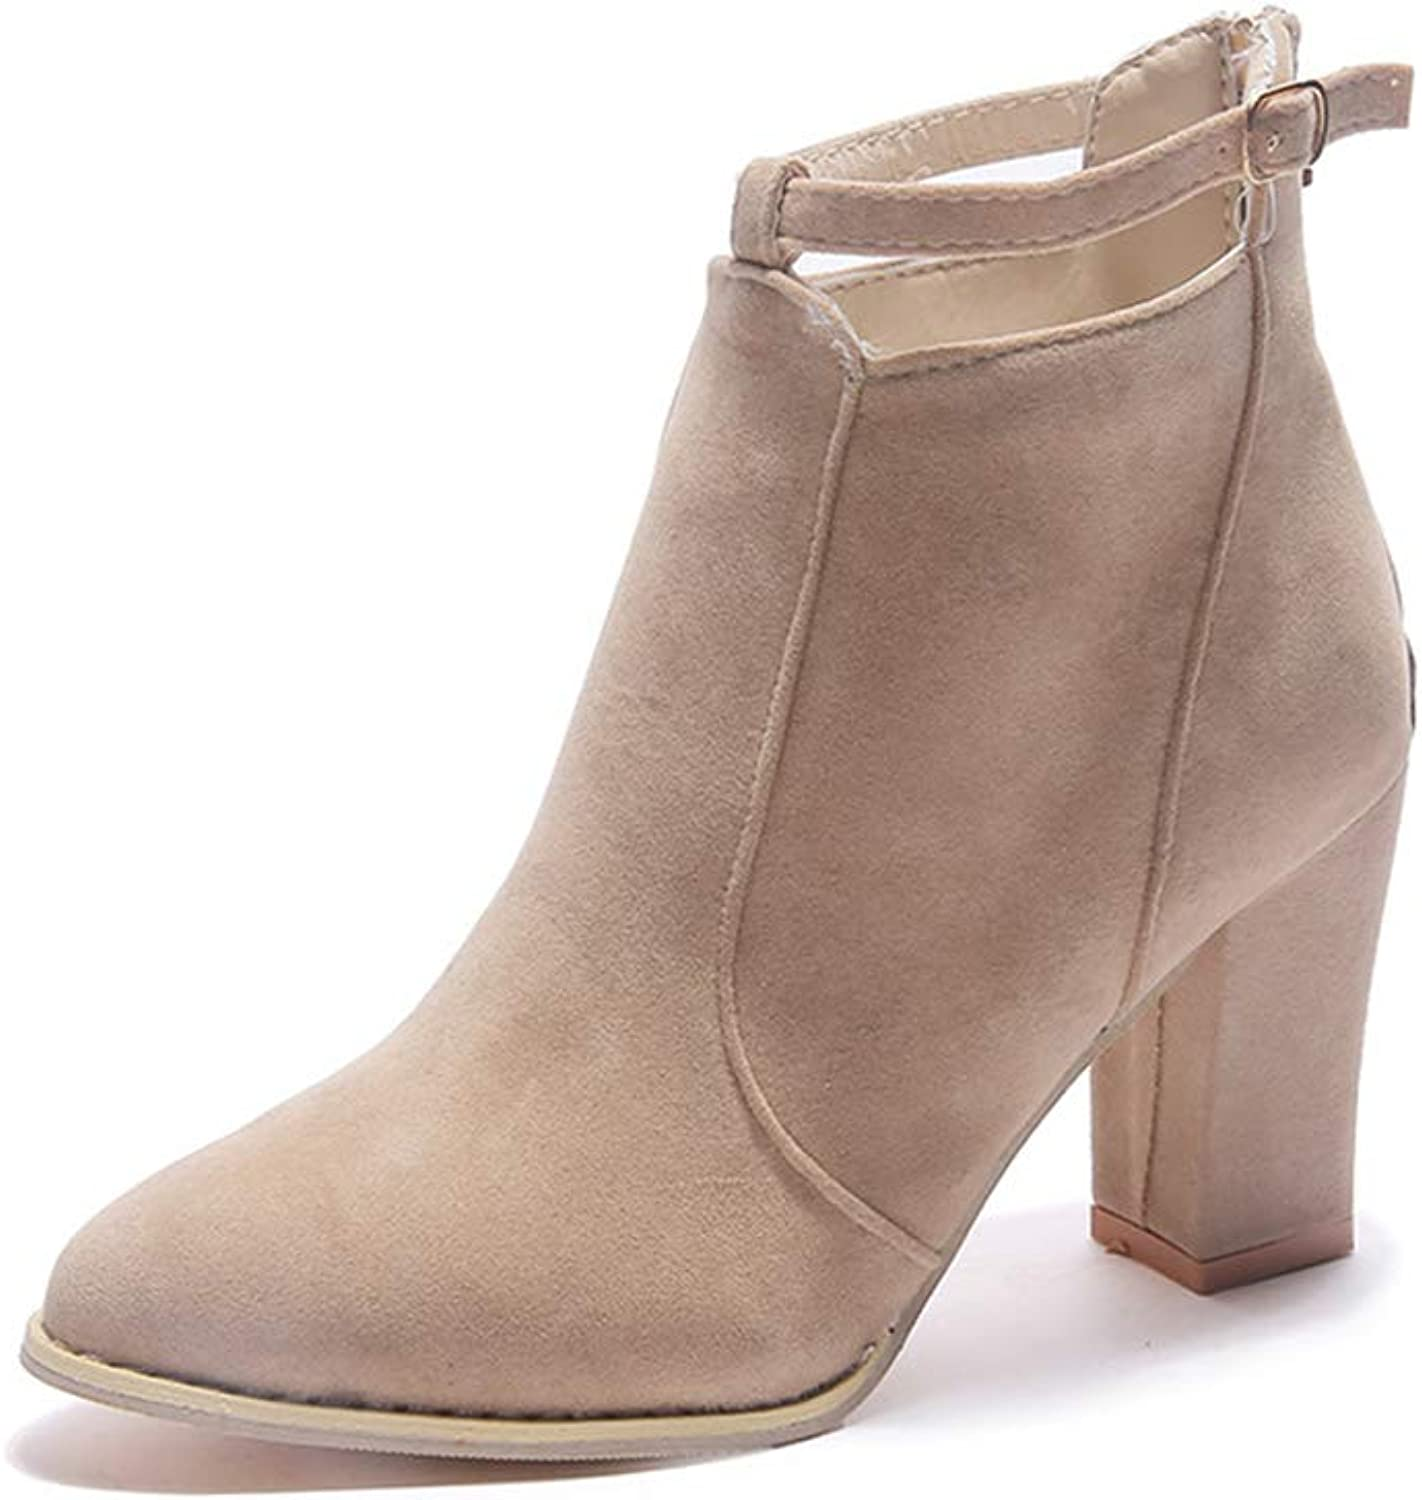 CHENSF Womens Stylish Buckle Strap Dress Ankle Bootie